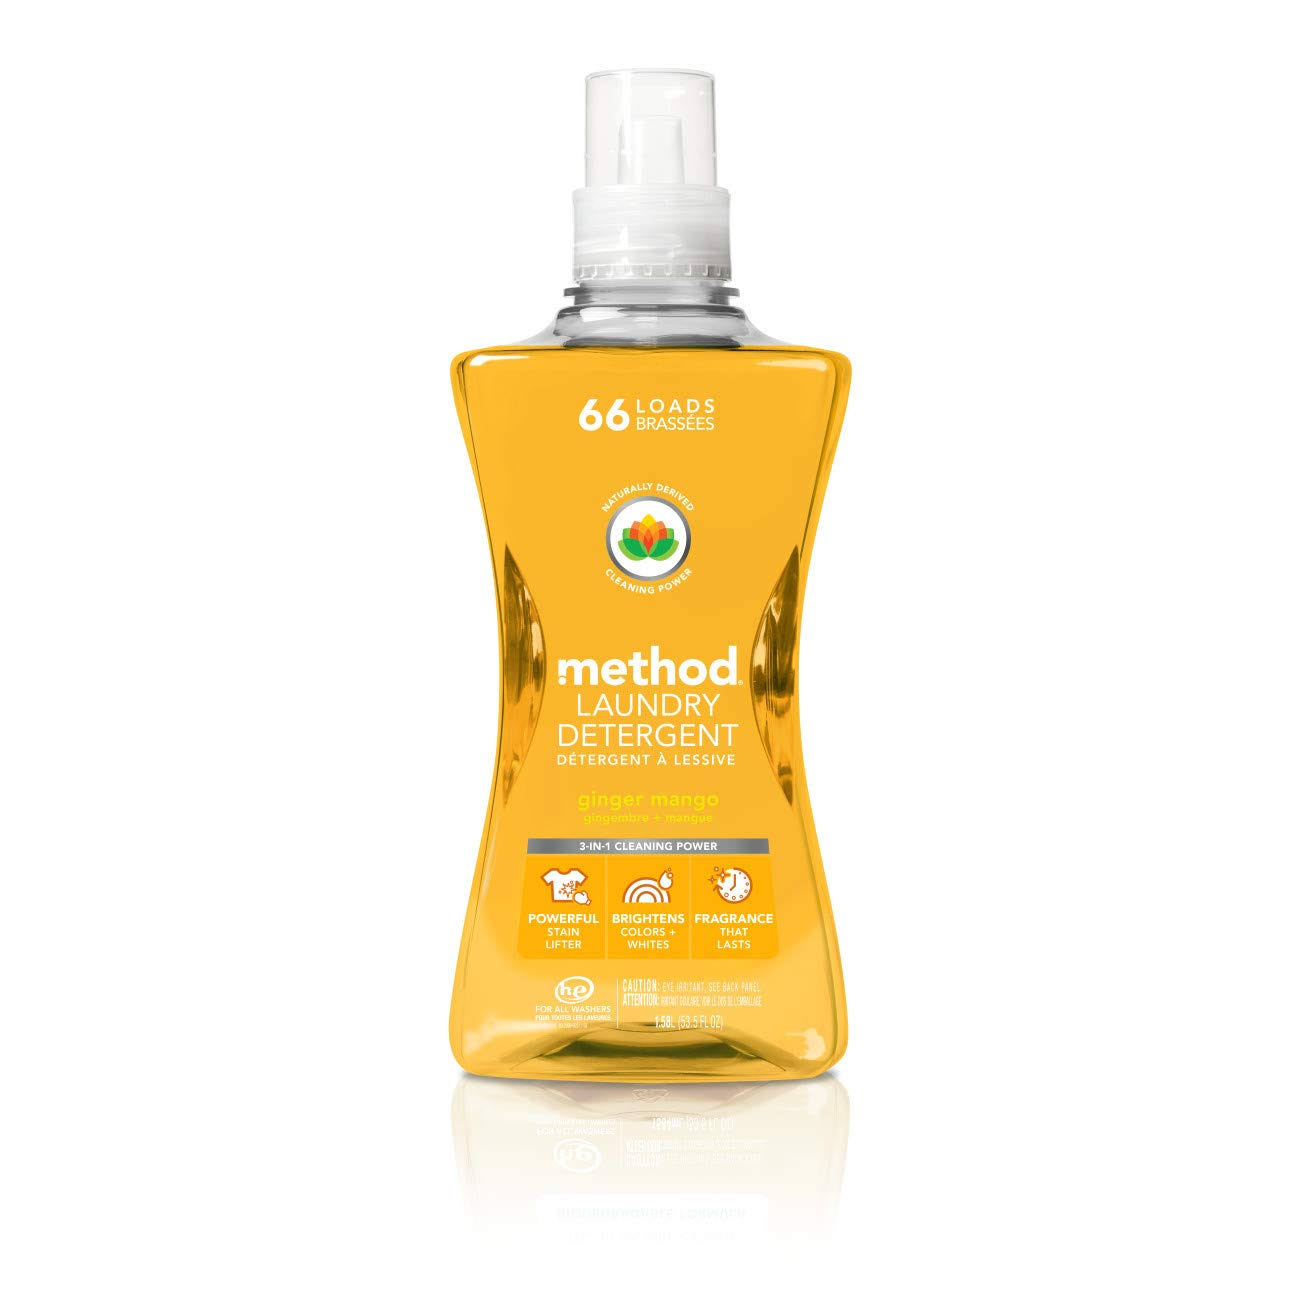 Method Laundry Detergent - Ginger Mango, 53.5oz